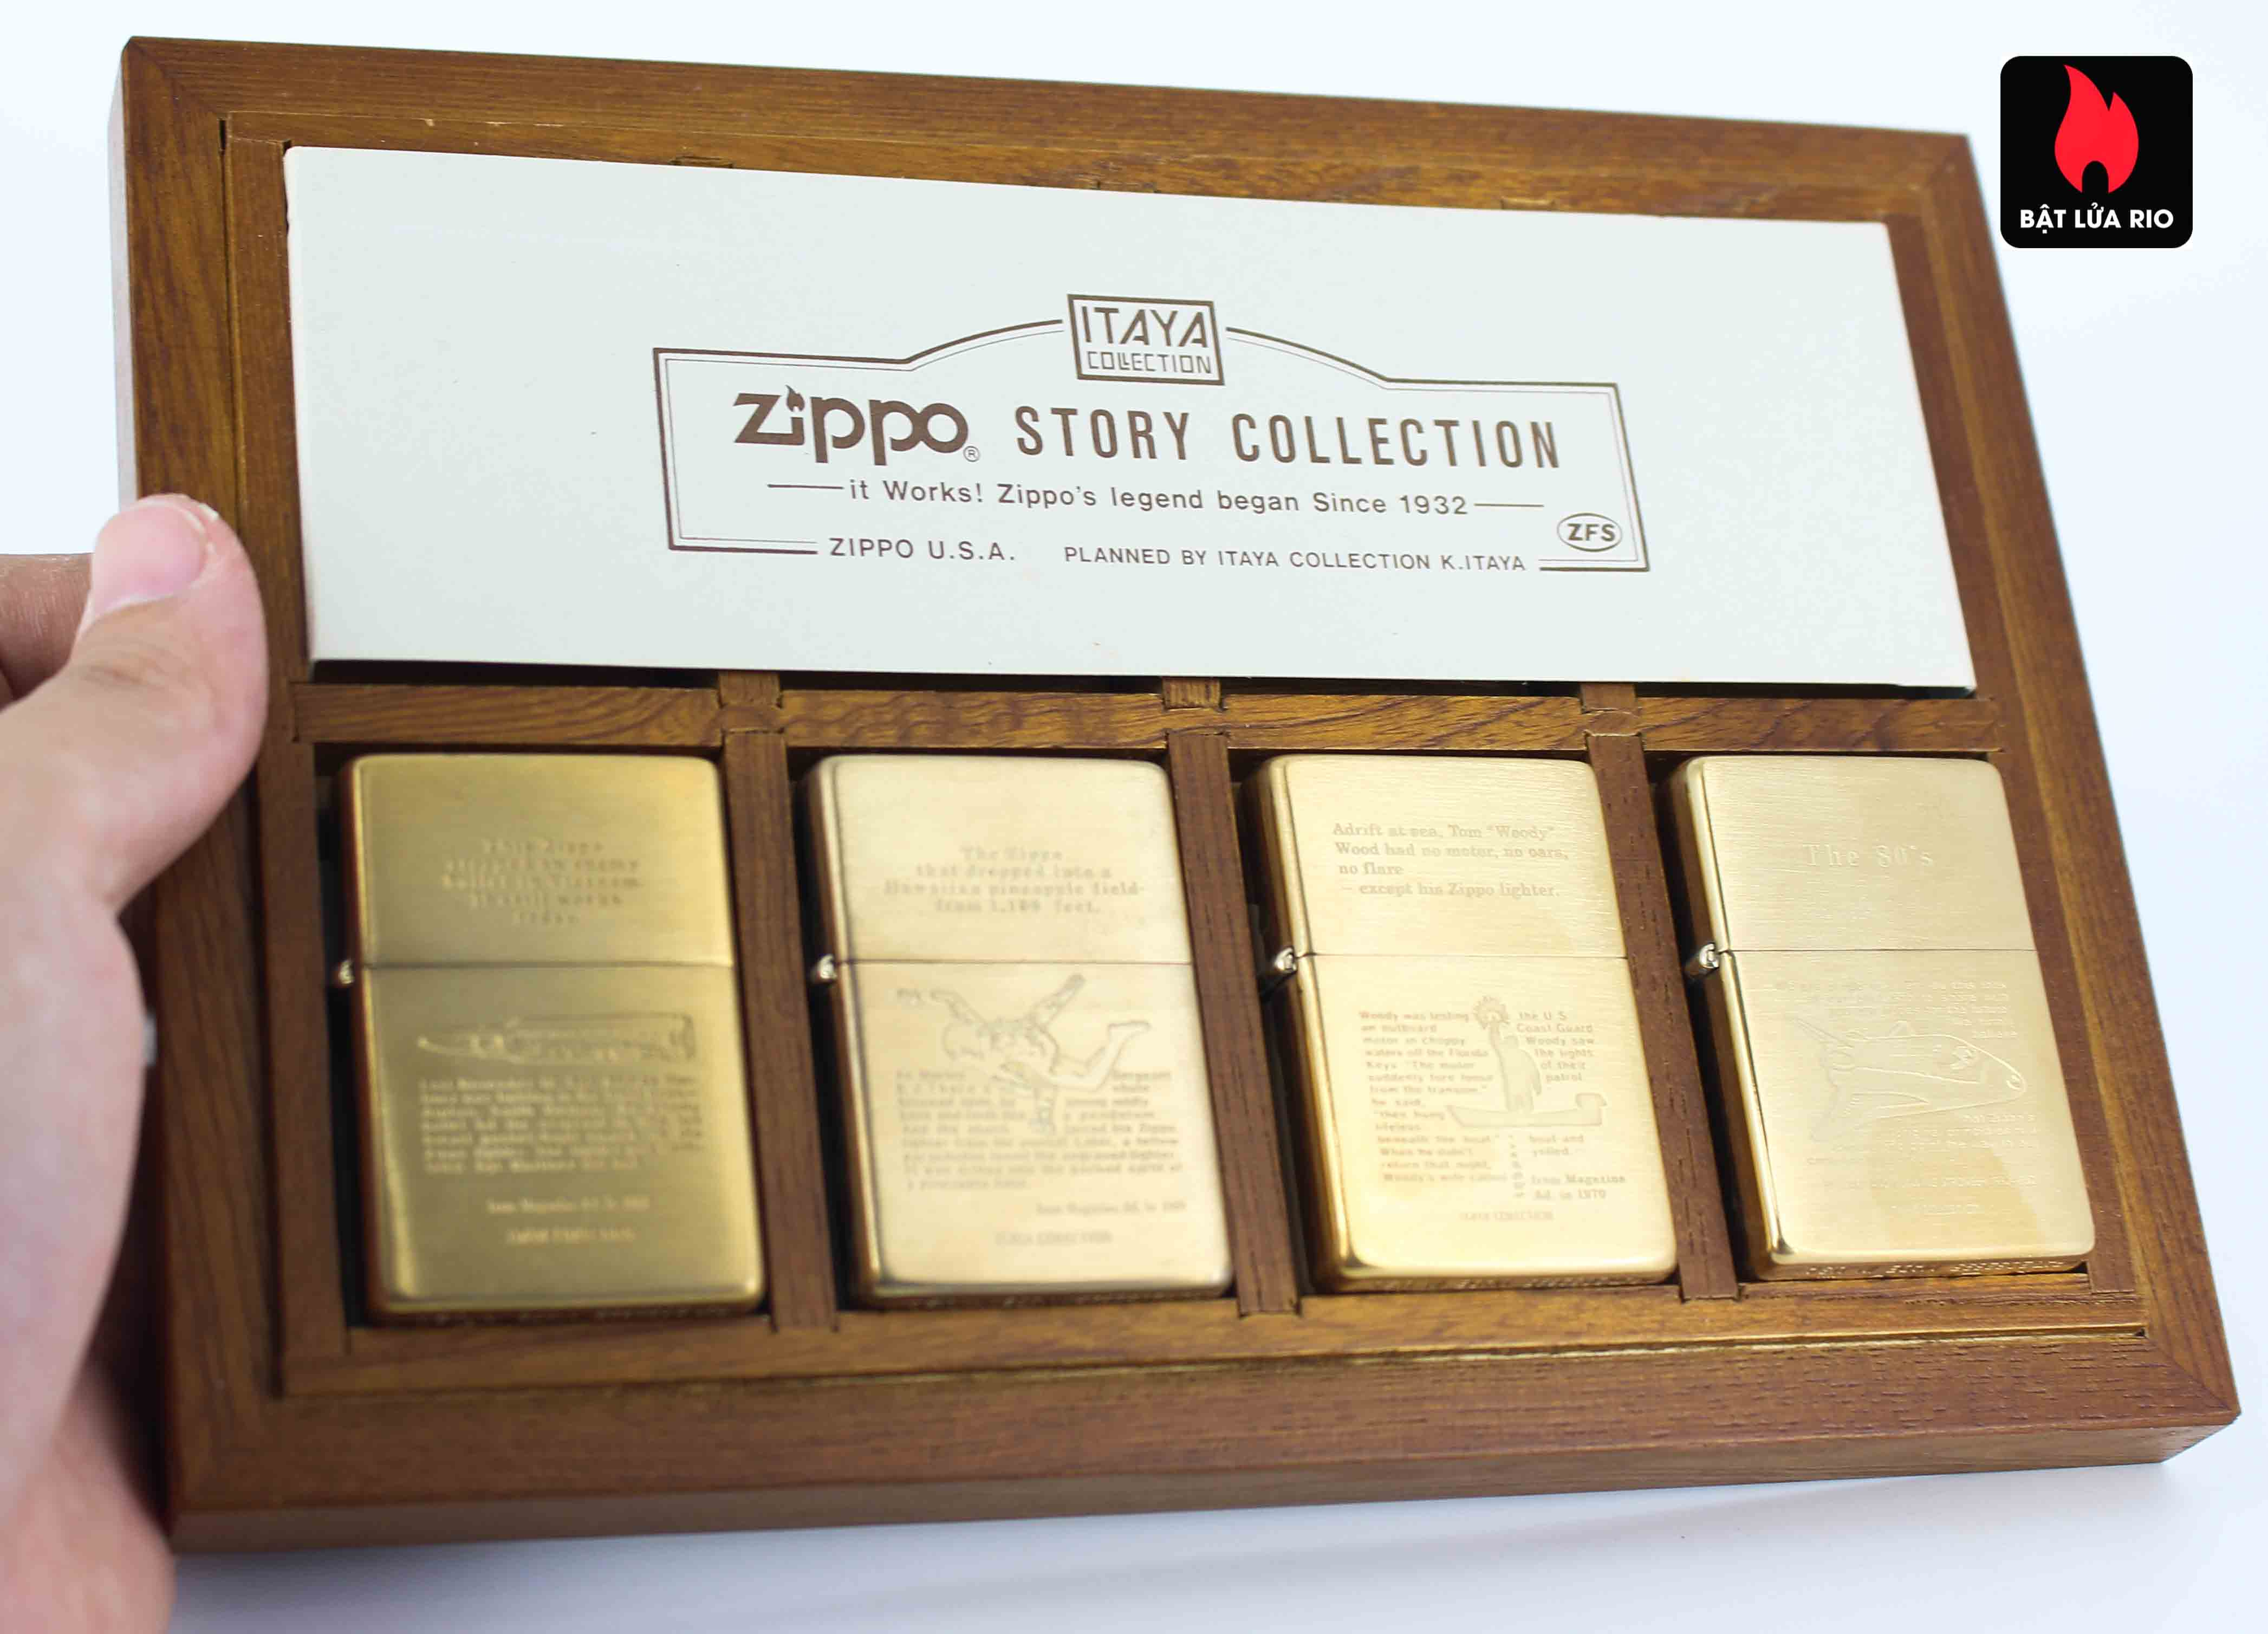 Zippo Serries 1993 - Itaya Colection - Zippo Story Collection 13